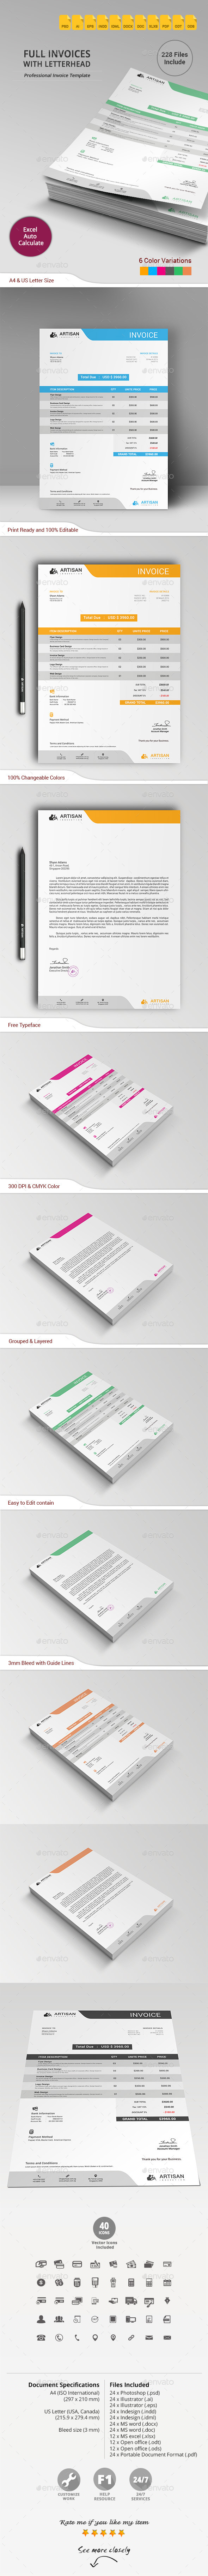 GraphicRiver Invoice with Letterhead 11005806